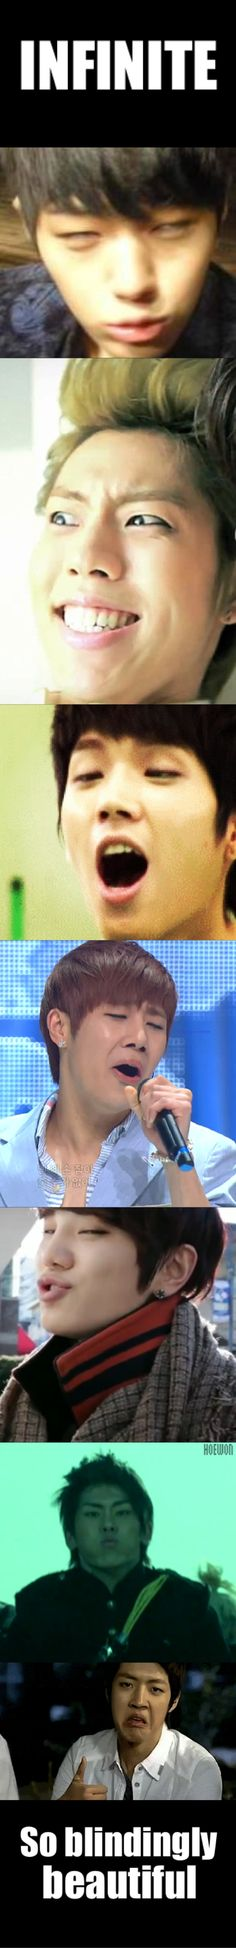 New Memes Kpop Face Crying 27 Ideas New Memes, Funny Memes, Hilarious, Cnblue, Btob, Shinee, Kim Myungsoo, All About Kpop, Korean Boy